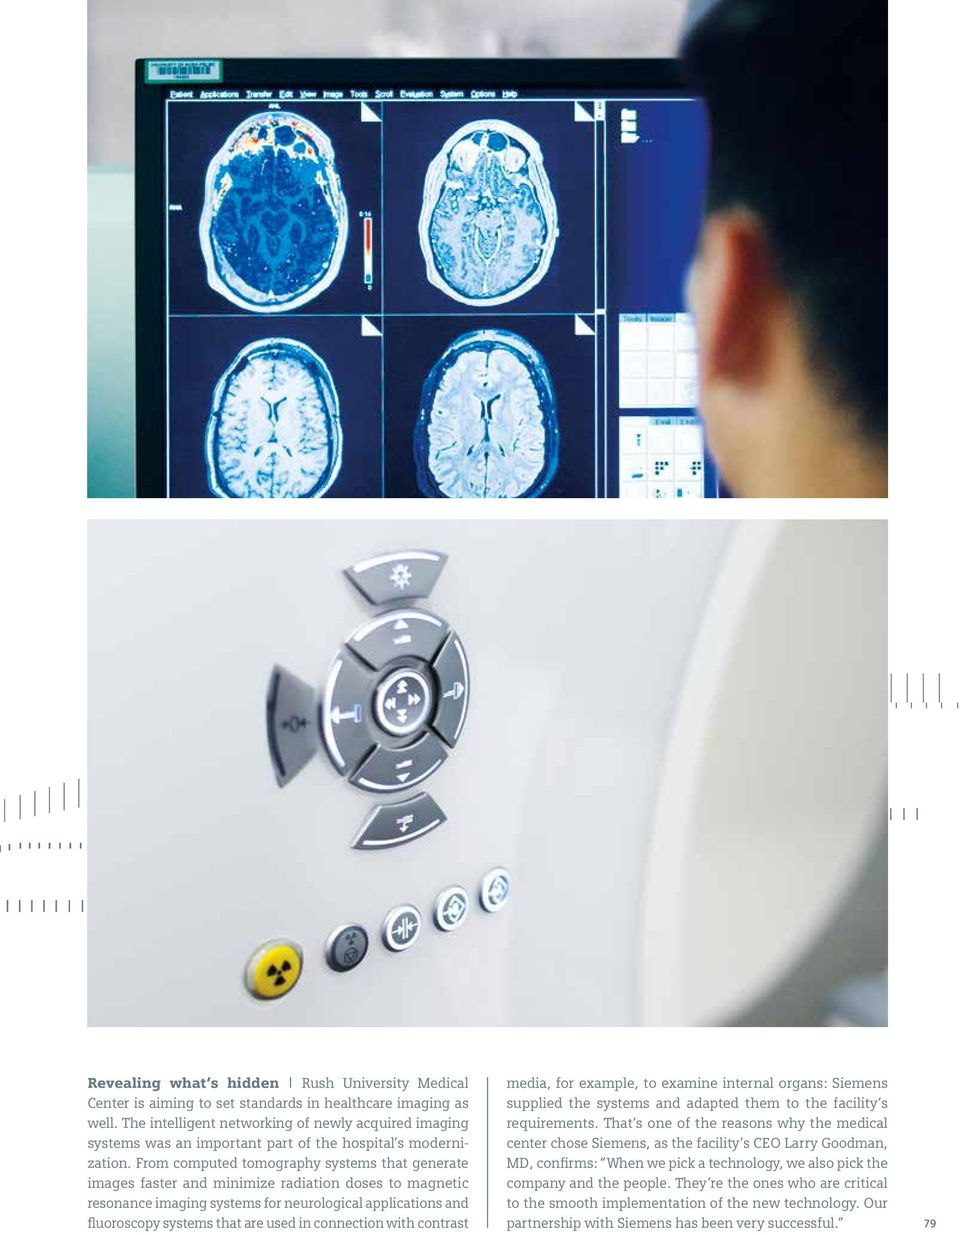 From computed tomography systems that generate images faster and minimize radiation doses to magnetic resonance imaging systems for neurological applications and fluoroscopy systems that are used in